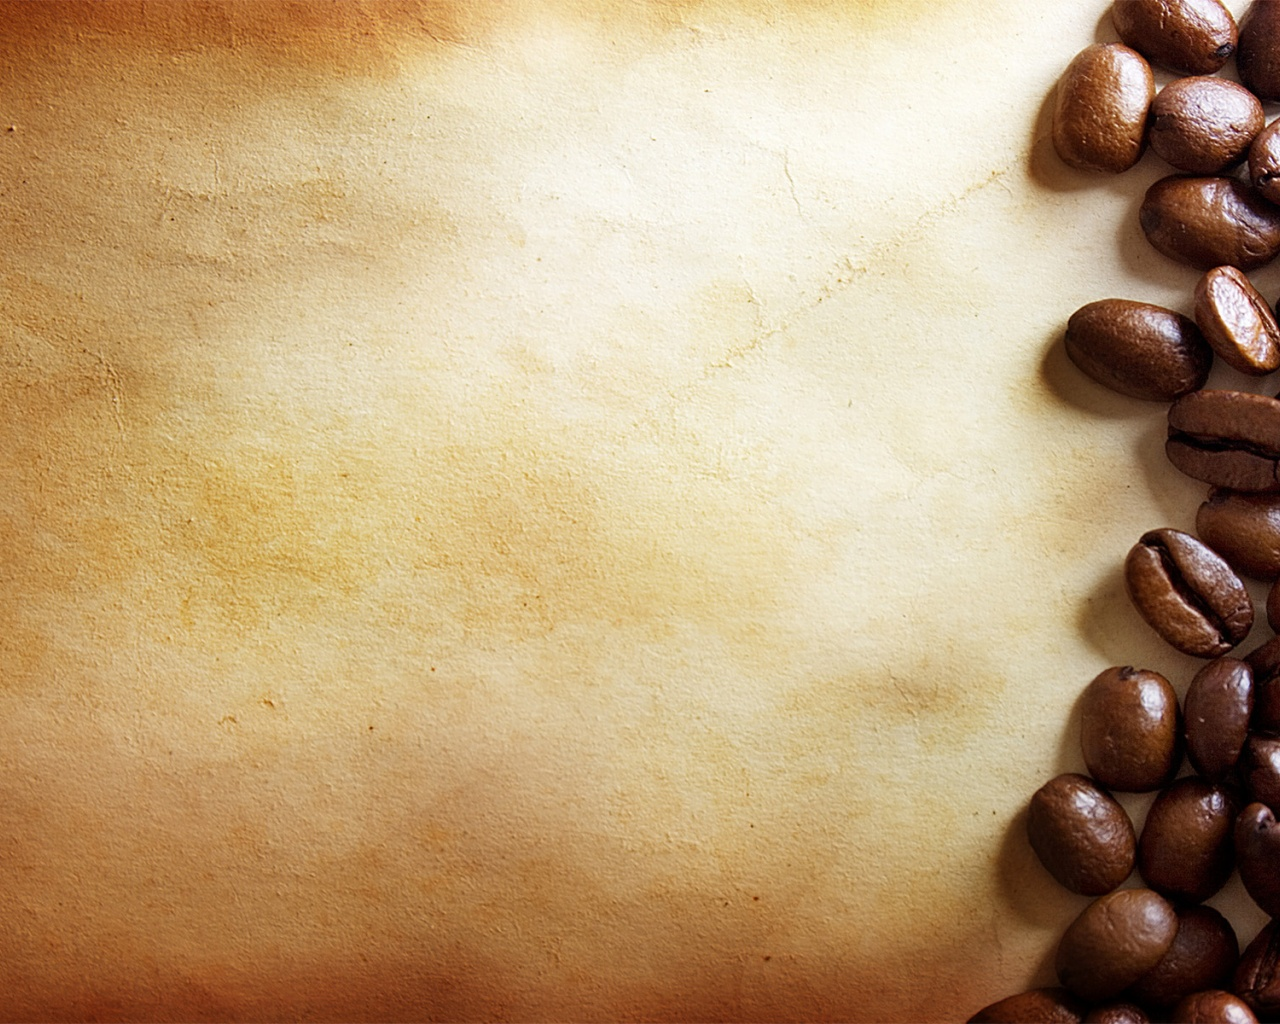 Coffee Wallpaper HD | Freetopwallpaper.com